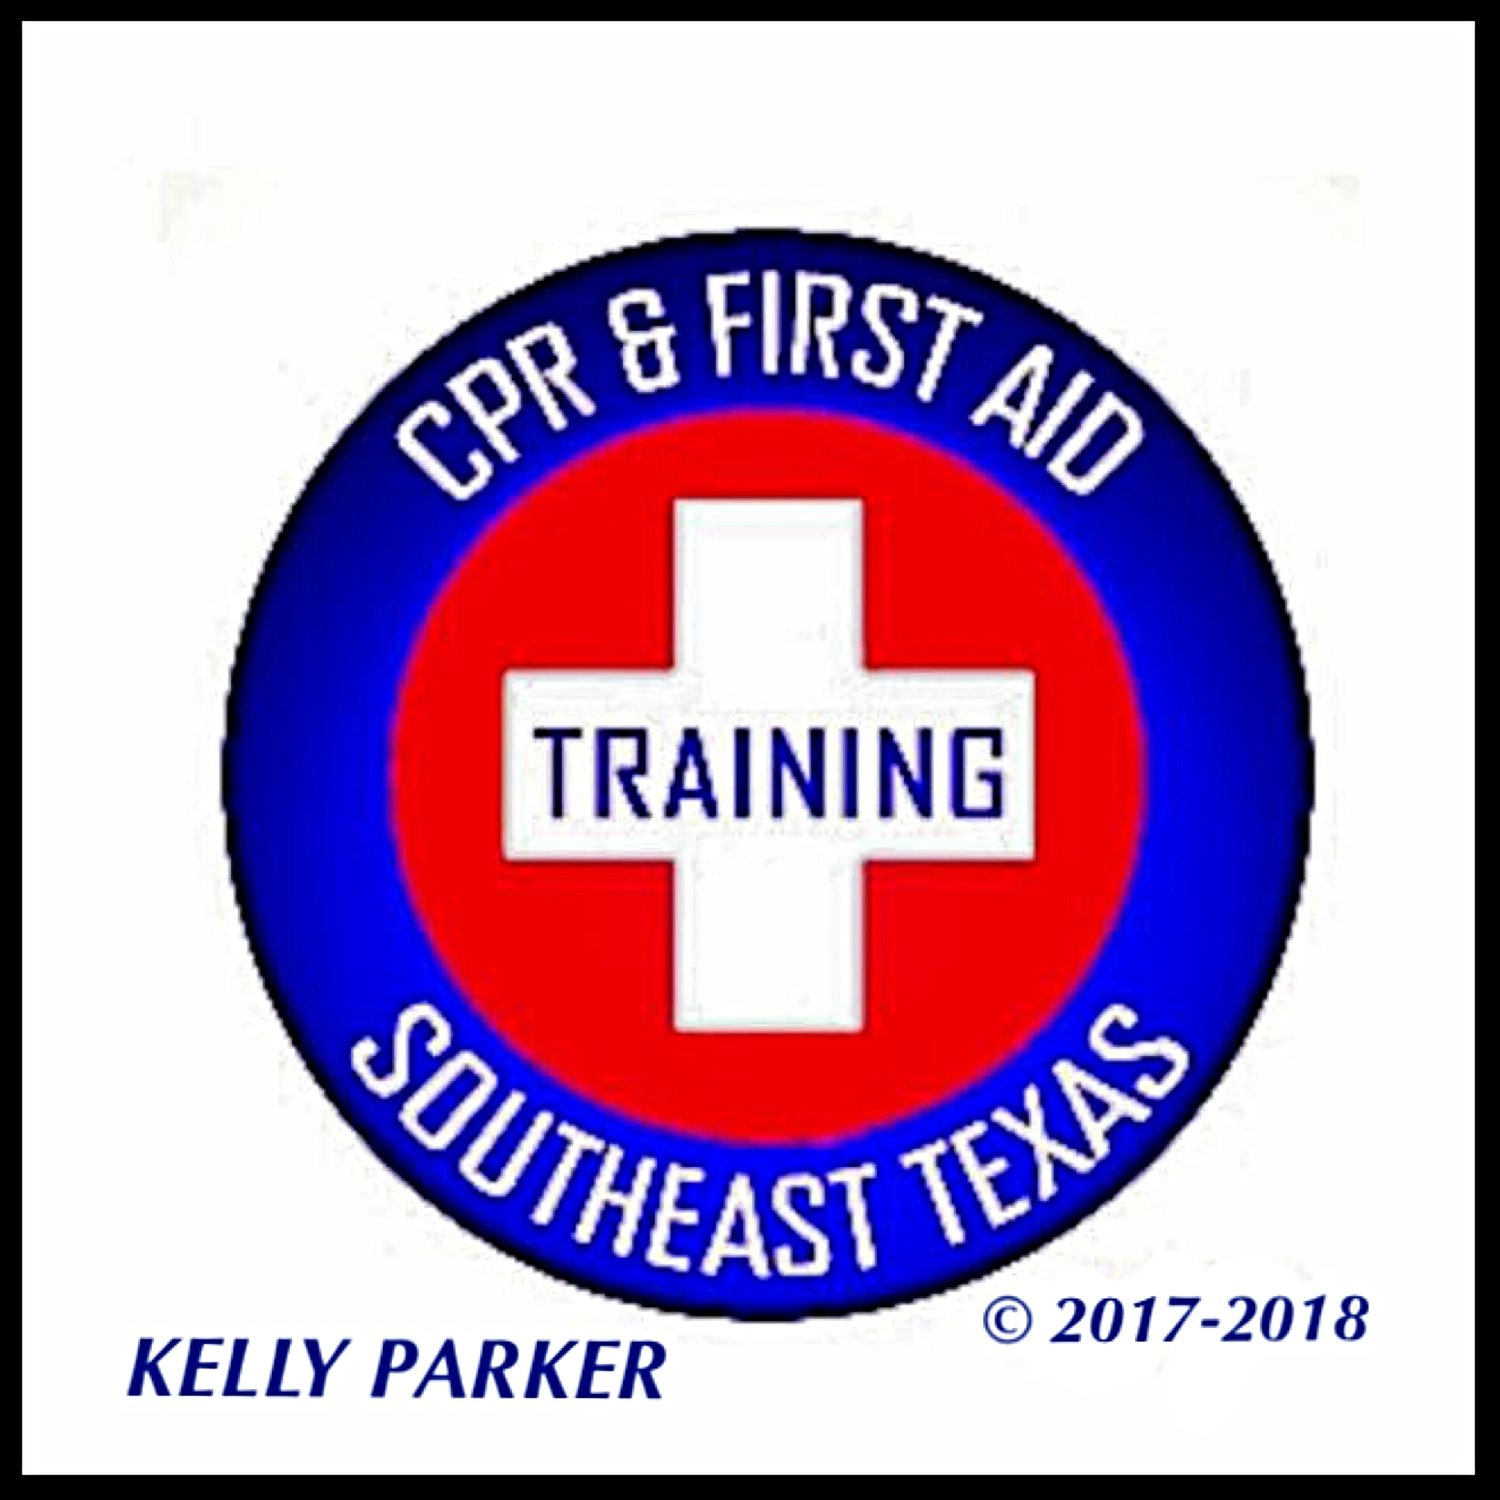 Cpr first aid training southeast texas 1betcityfo Choice Image